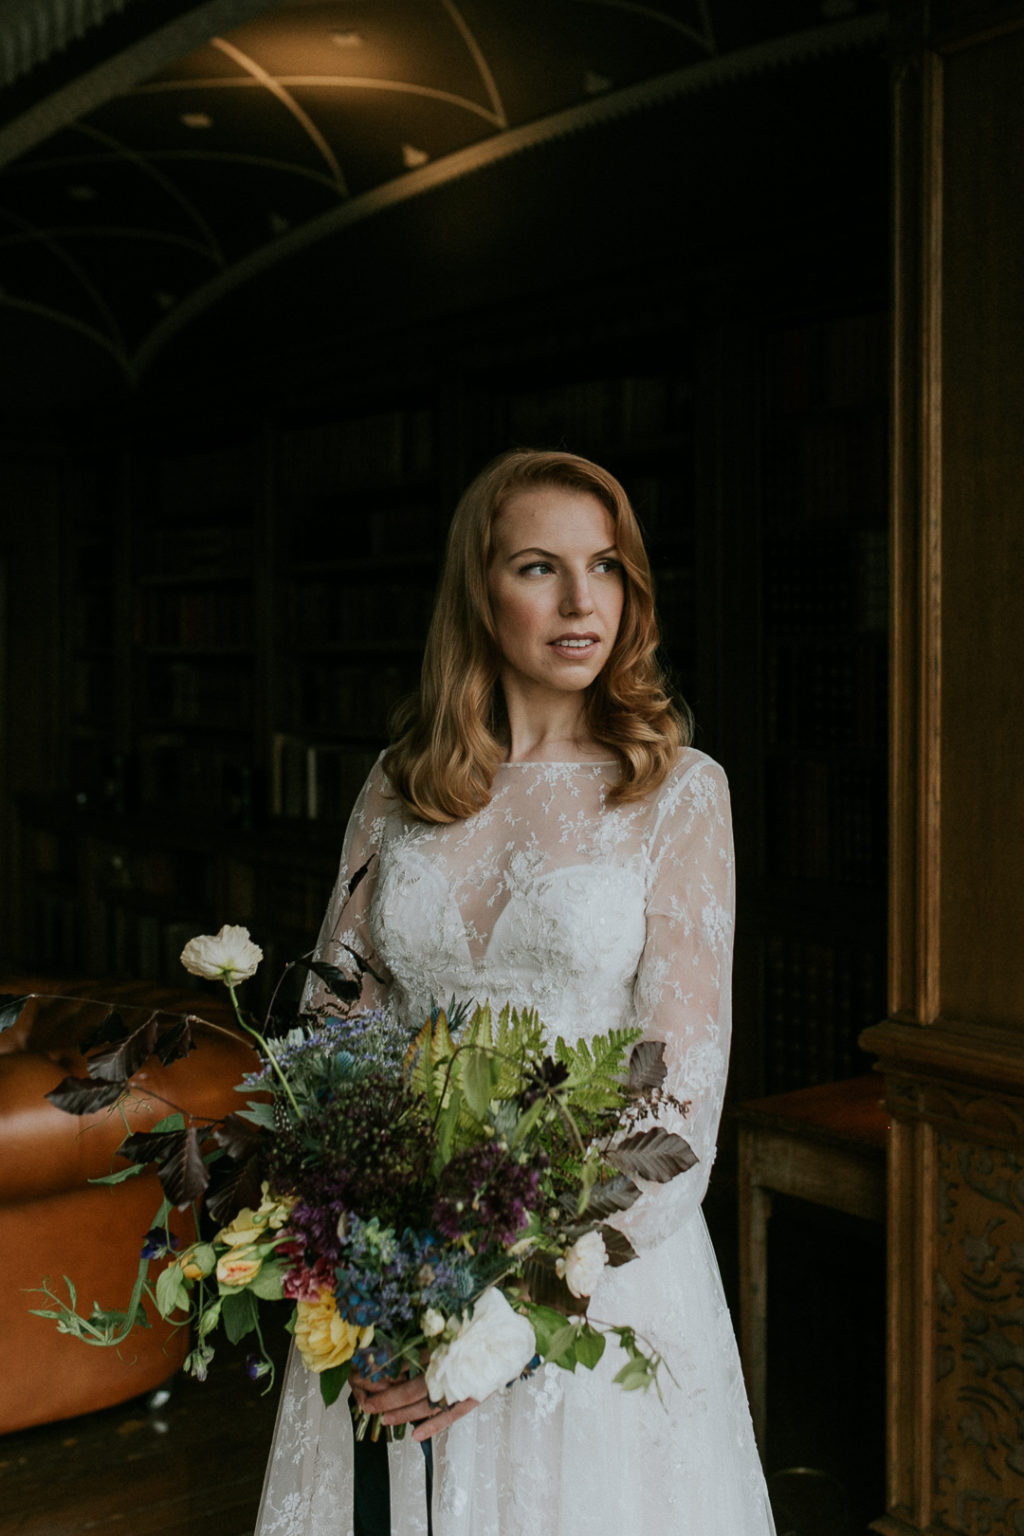 Her wedding bouquet was a lush one, with textural greenery, berries and neutral blooms